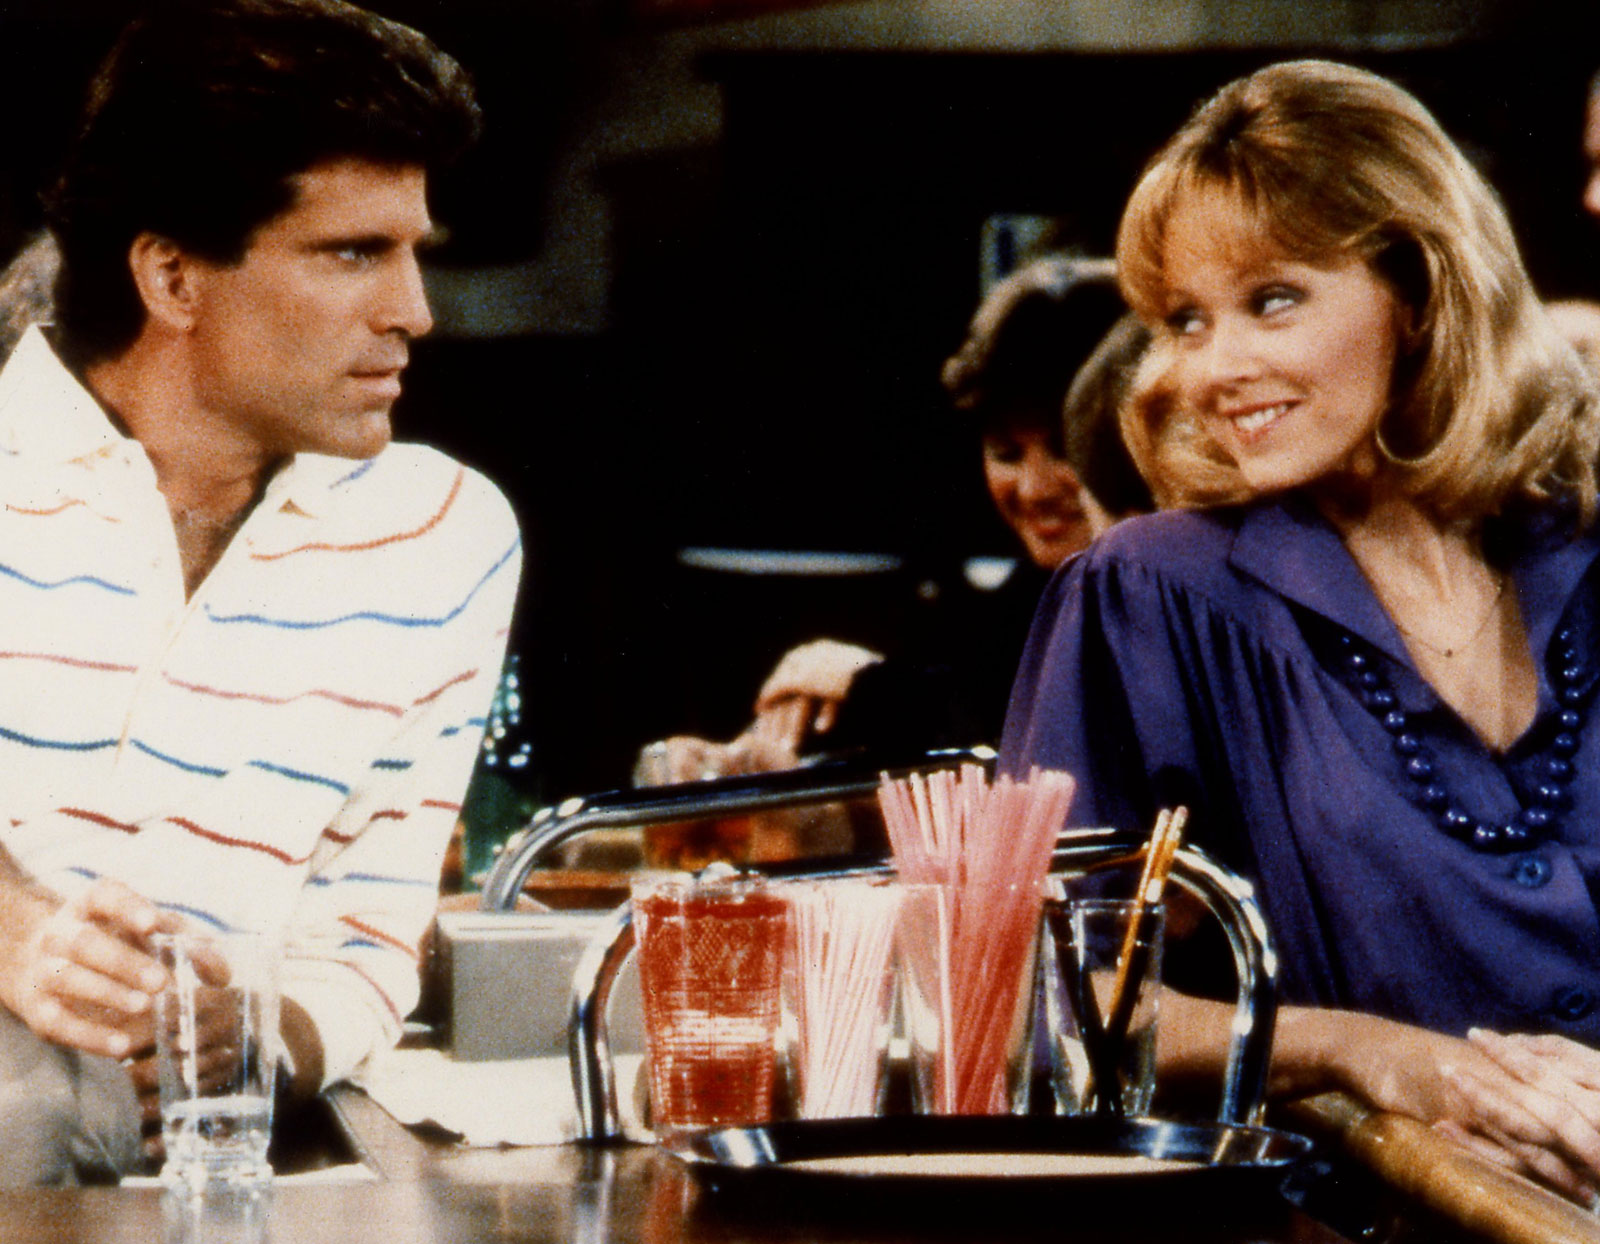 Ted Danson Shelley Long Cheers Raise Your Glasses To These Facts You Might Not Have Known About Cheers